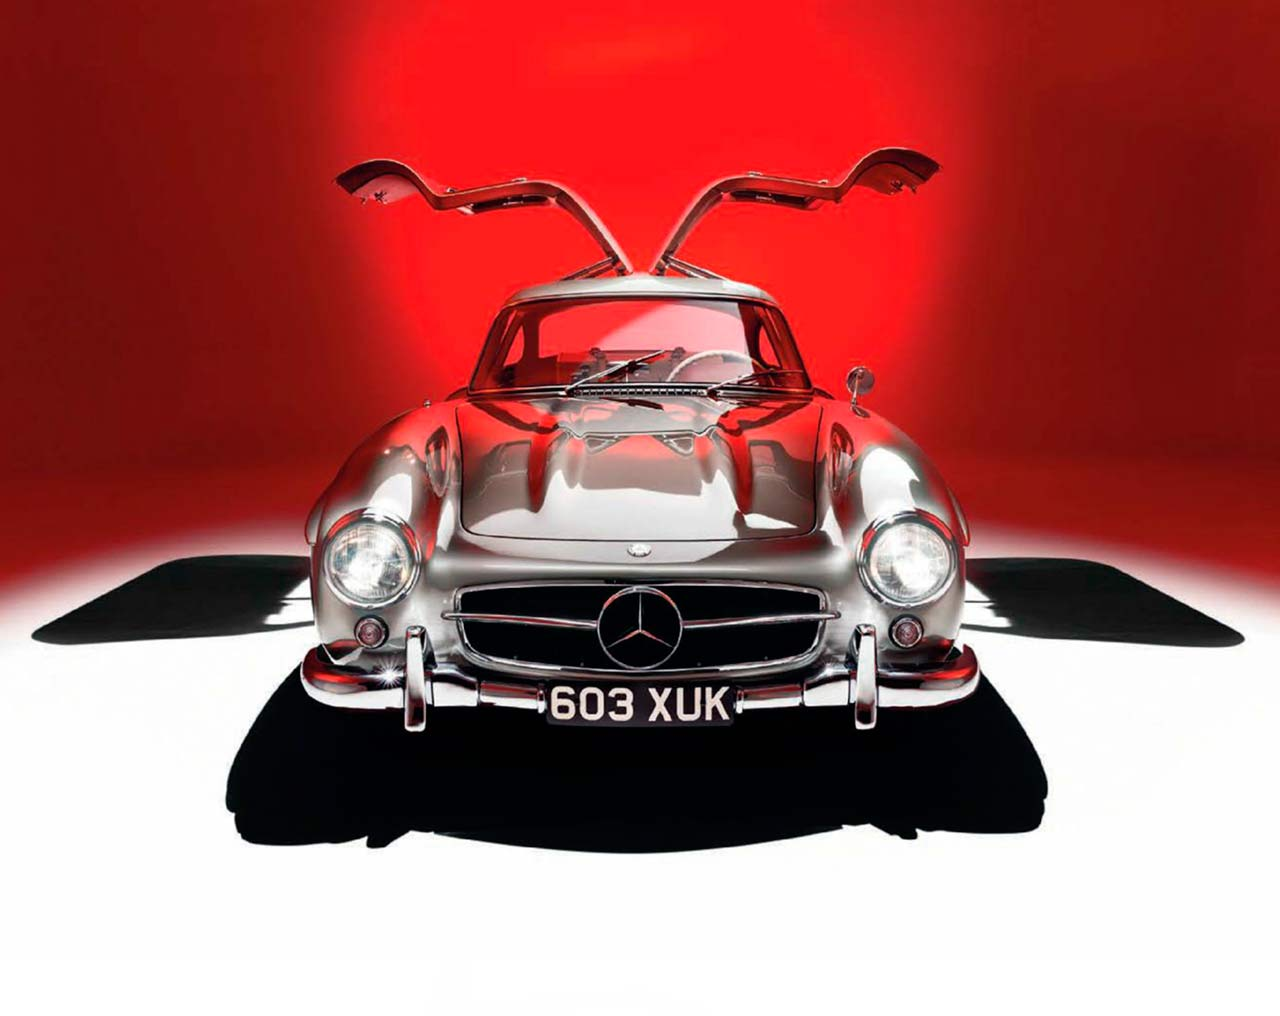 1954 Mercedes-Benz 300SL Gullwing W198 extraordinary '50s supercar was a technological marvel